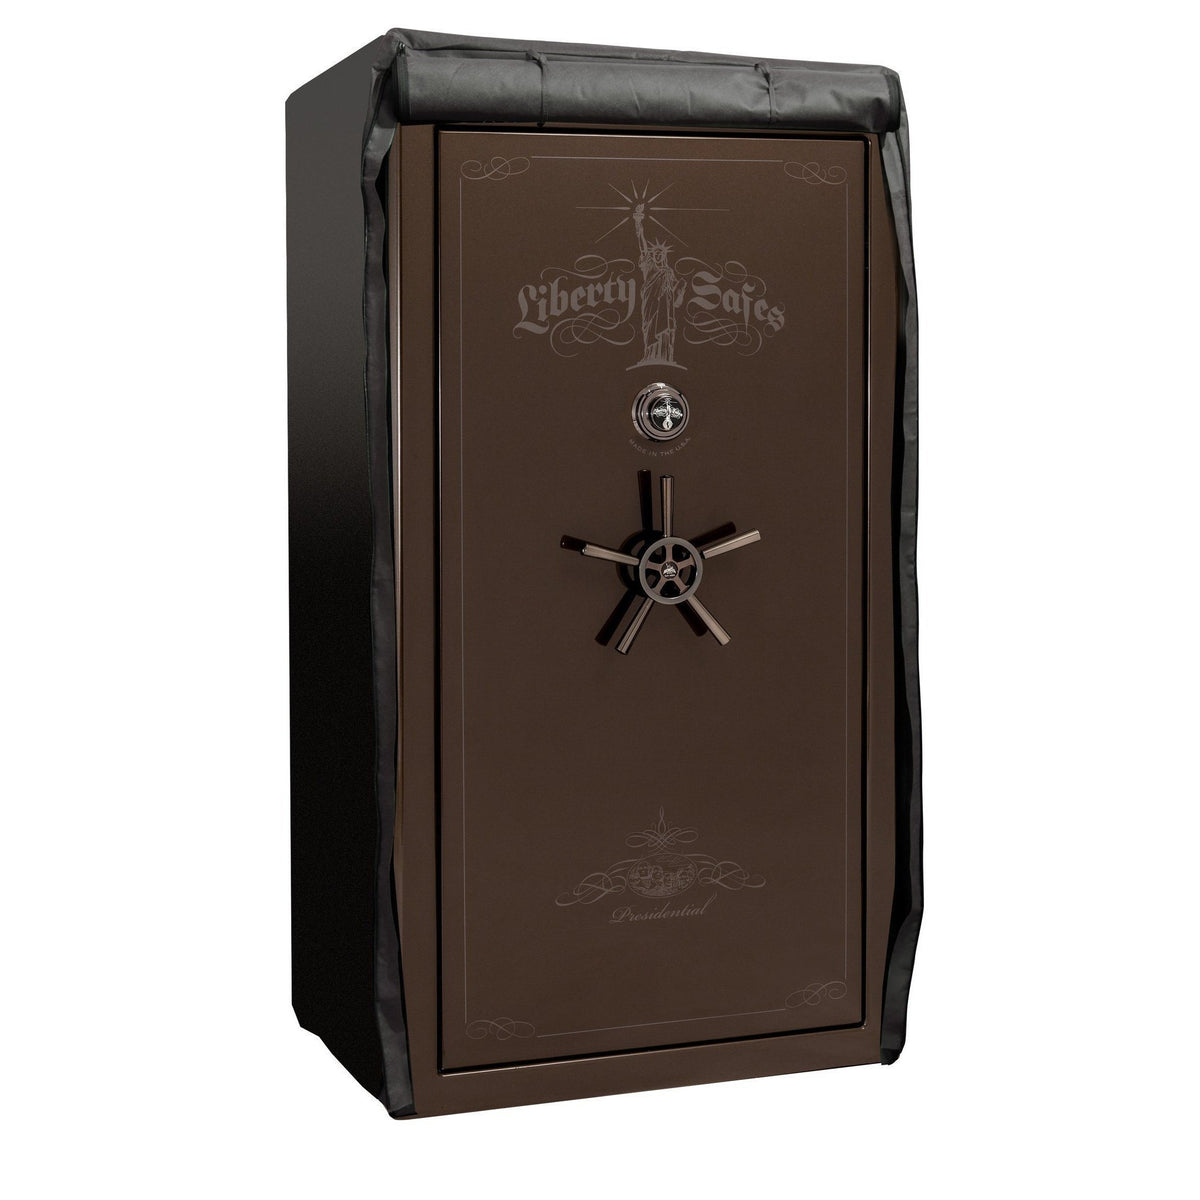 Accessory - Security - Safe Cover - 40 size safes